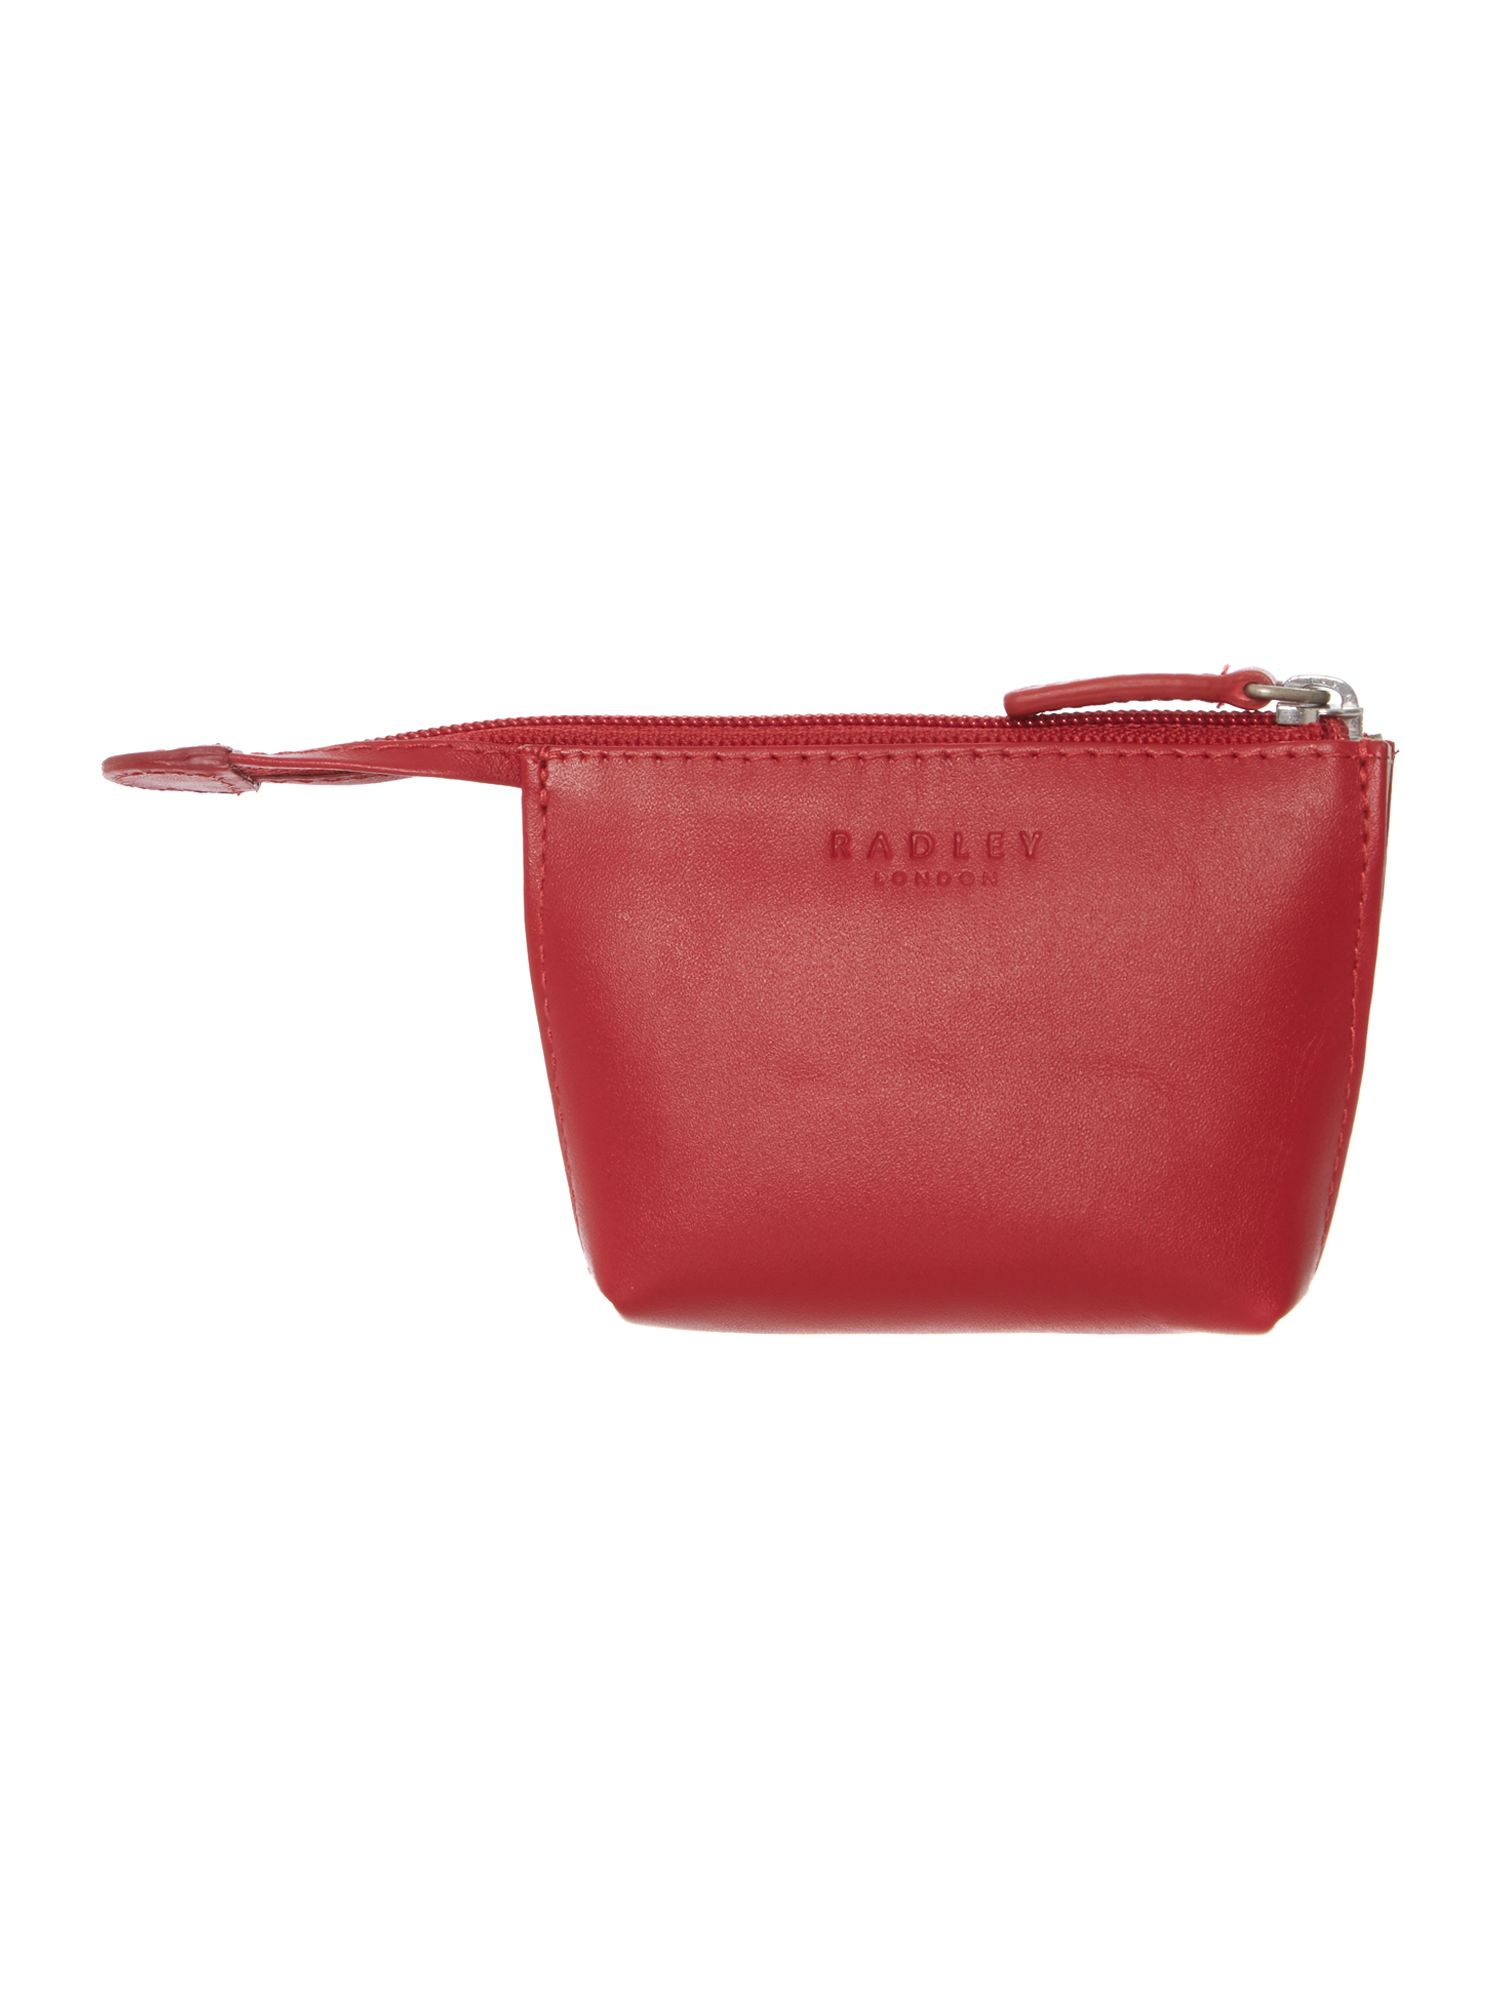 Heritage dog red small zip coin purse